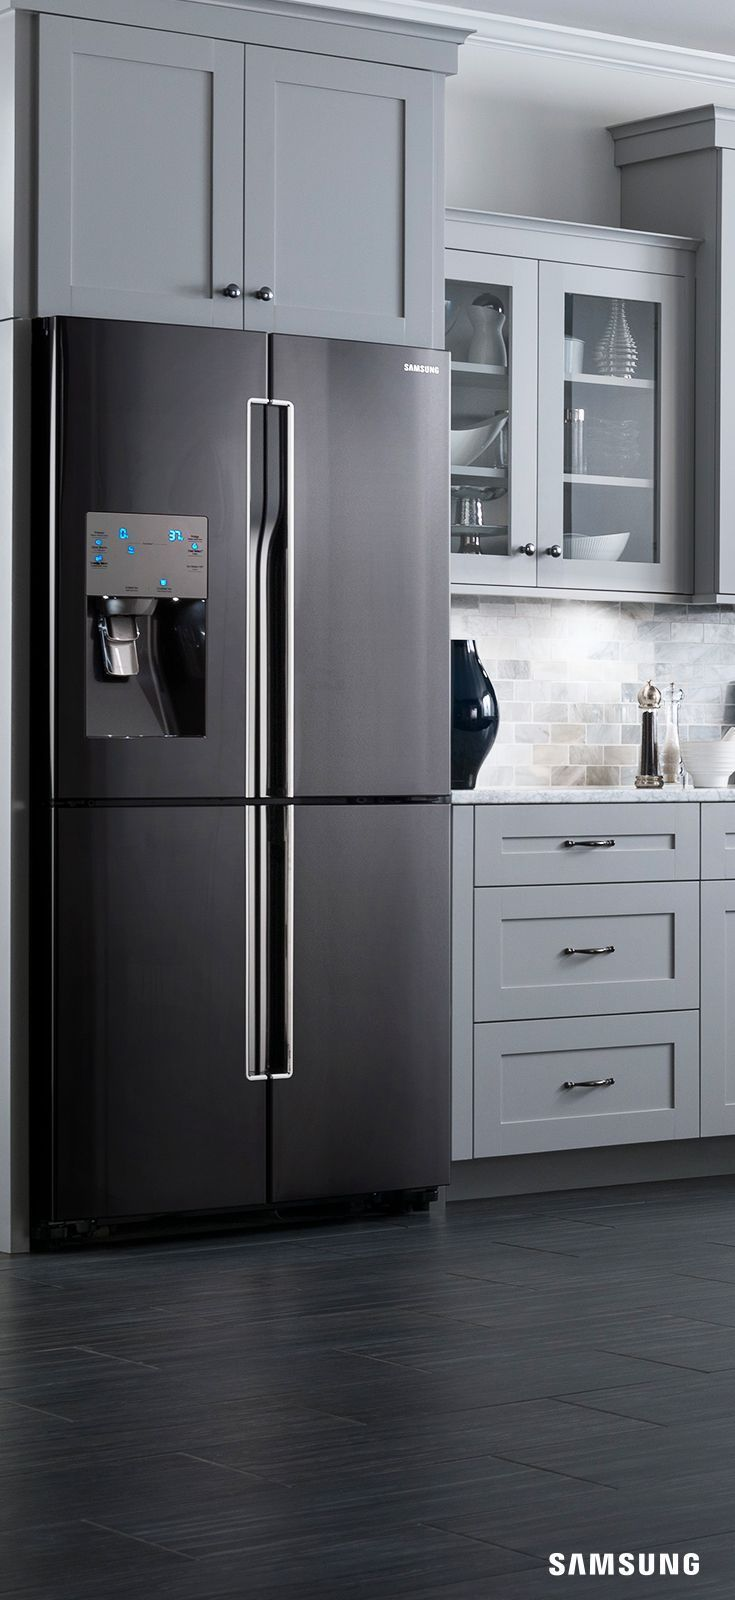 Kitchens With Black And Stainless Steel Appliances Featuring Grey Cabinet Black Kitchens Home Kitchens Kitchen Appliances